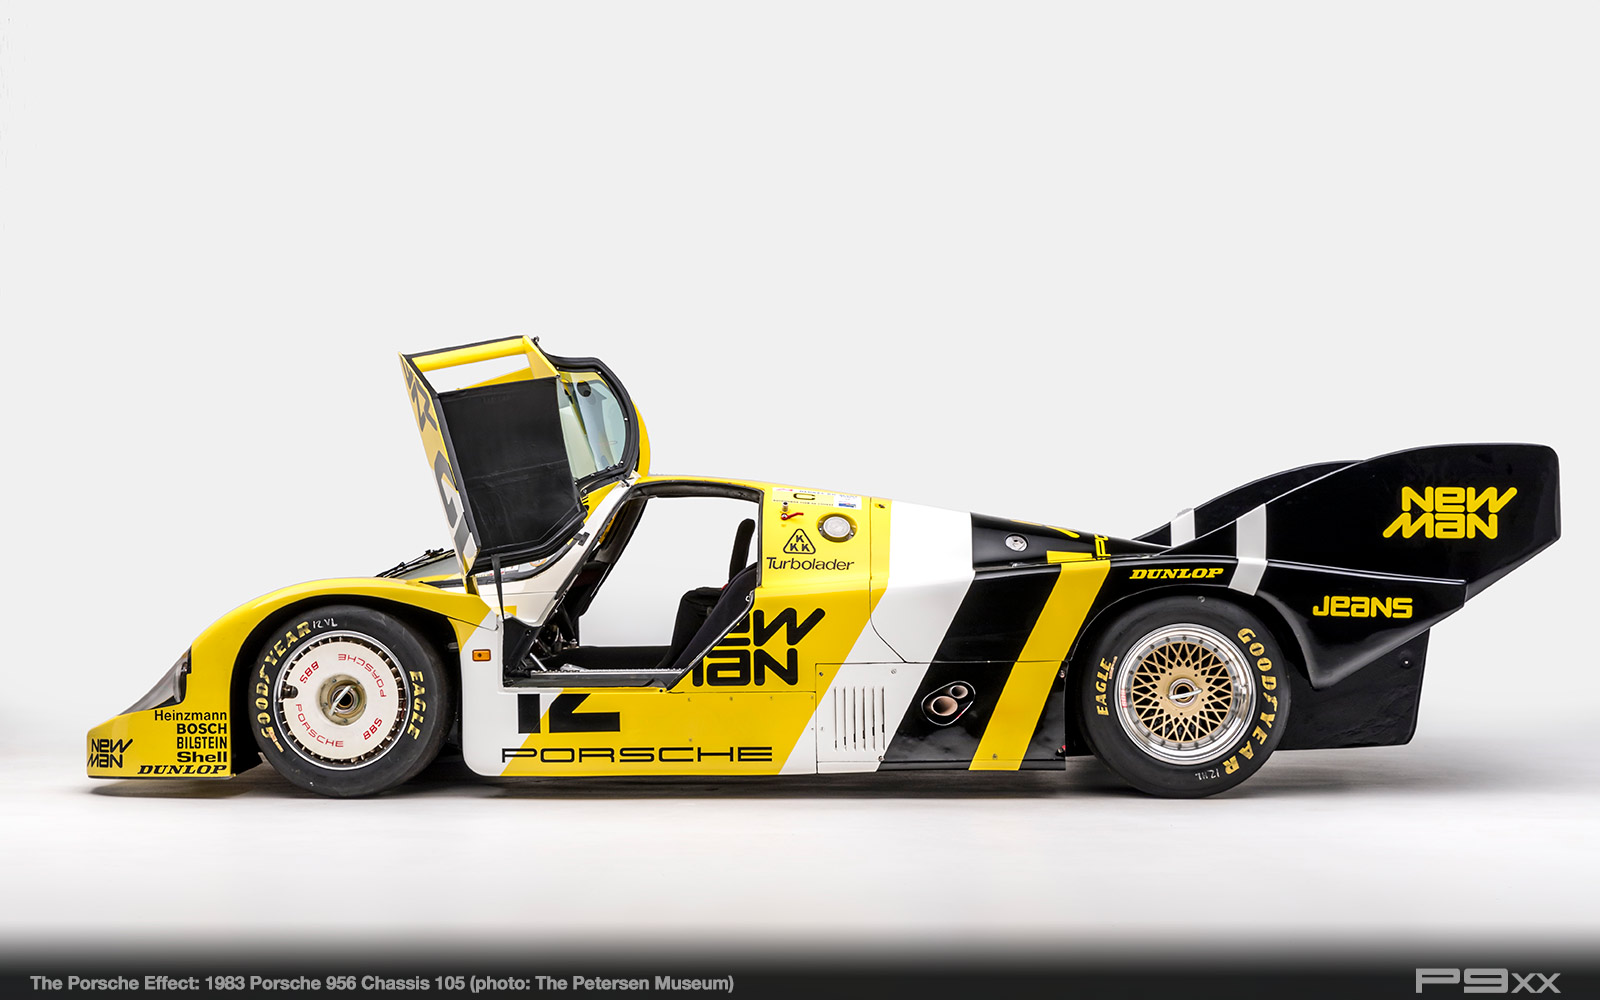 1983-956-Chassis-105-Petersen-Automotive-Museum-The-Porsche-Effect-424